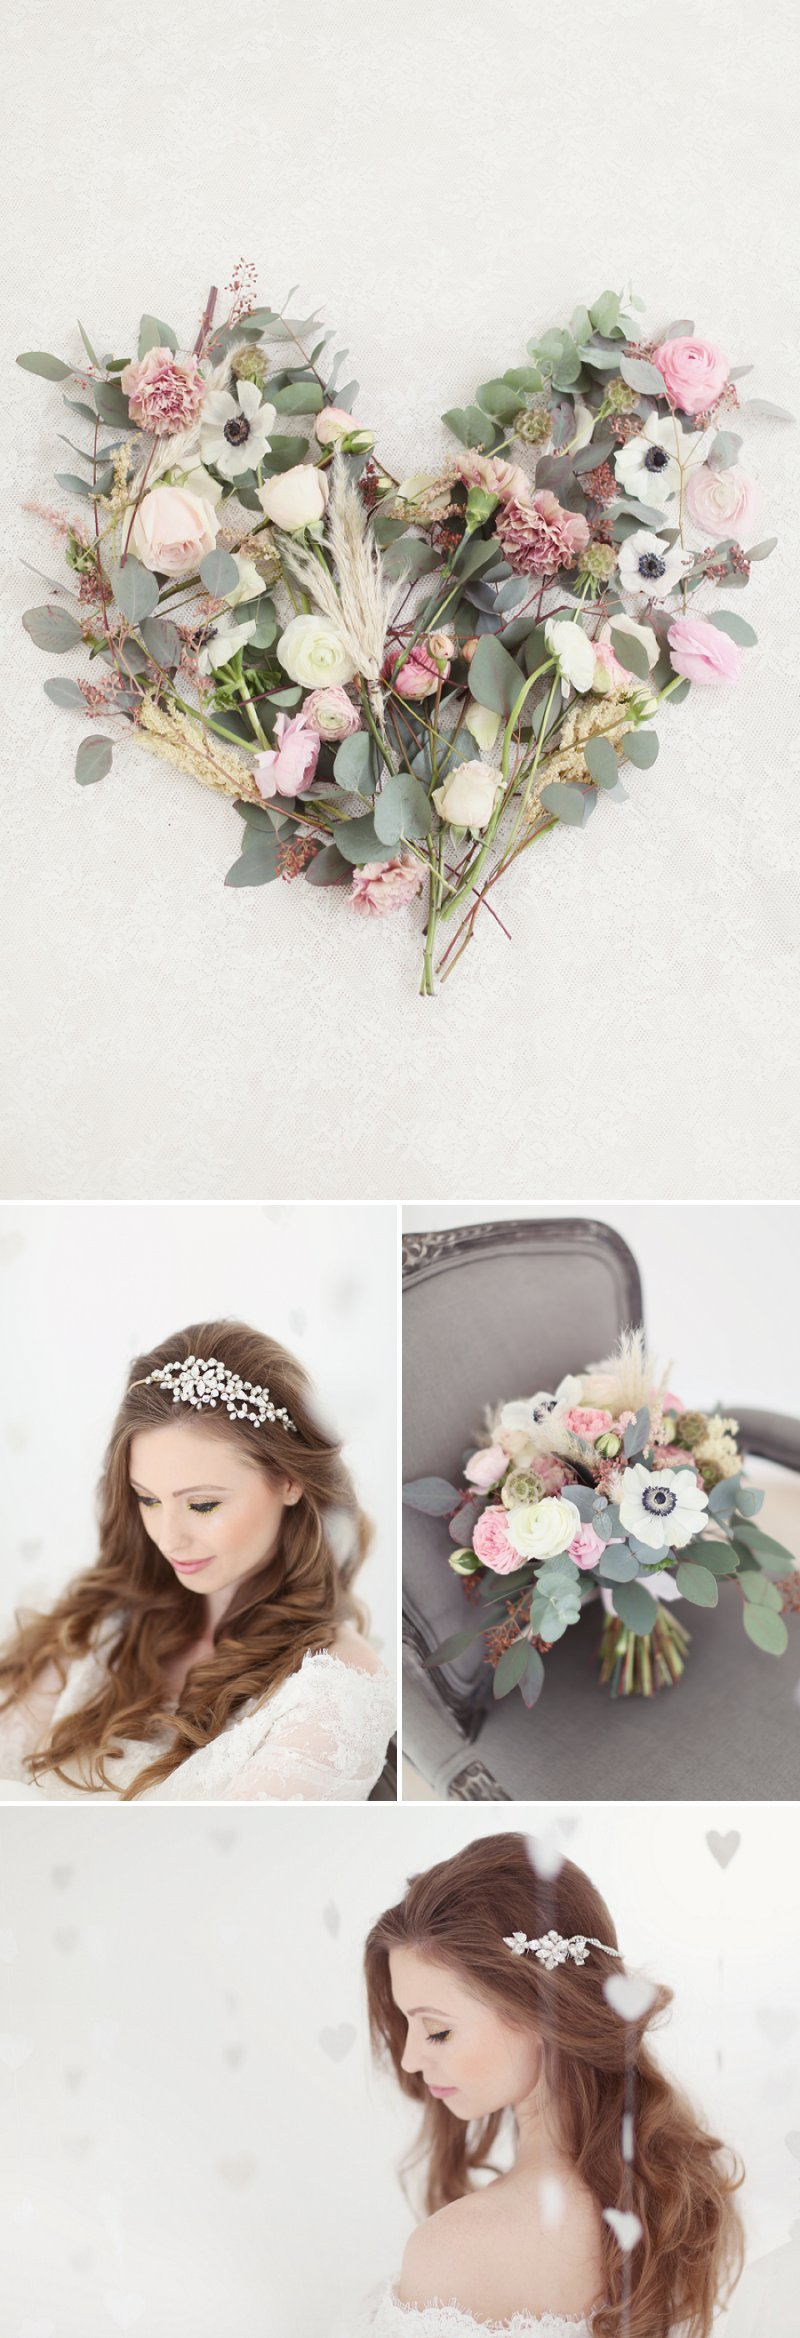 Pastel Valentines Day Inspired Bridal Shoot Featuring Hair Accessories From Corrine Smith Design With Flowers From I Heart Flowers And Images By Eva Sanders Photography 1